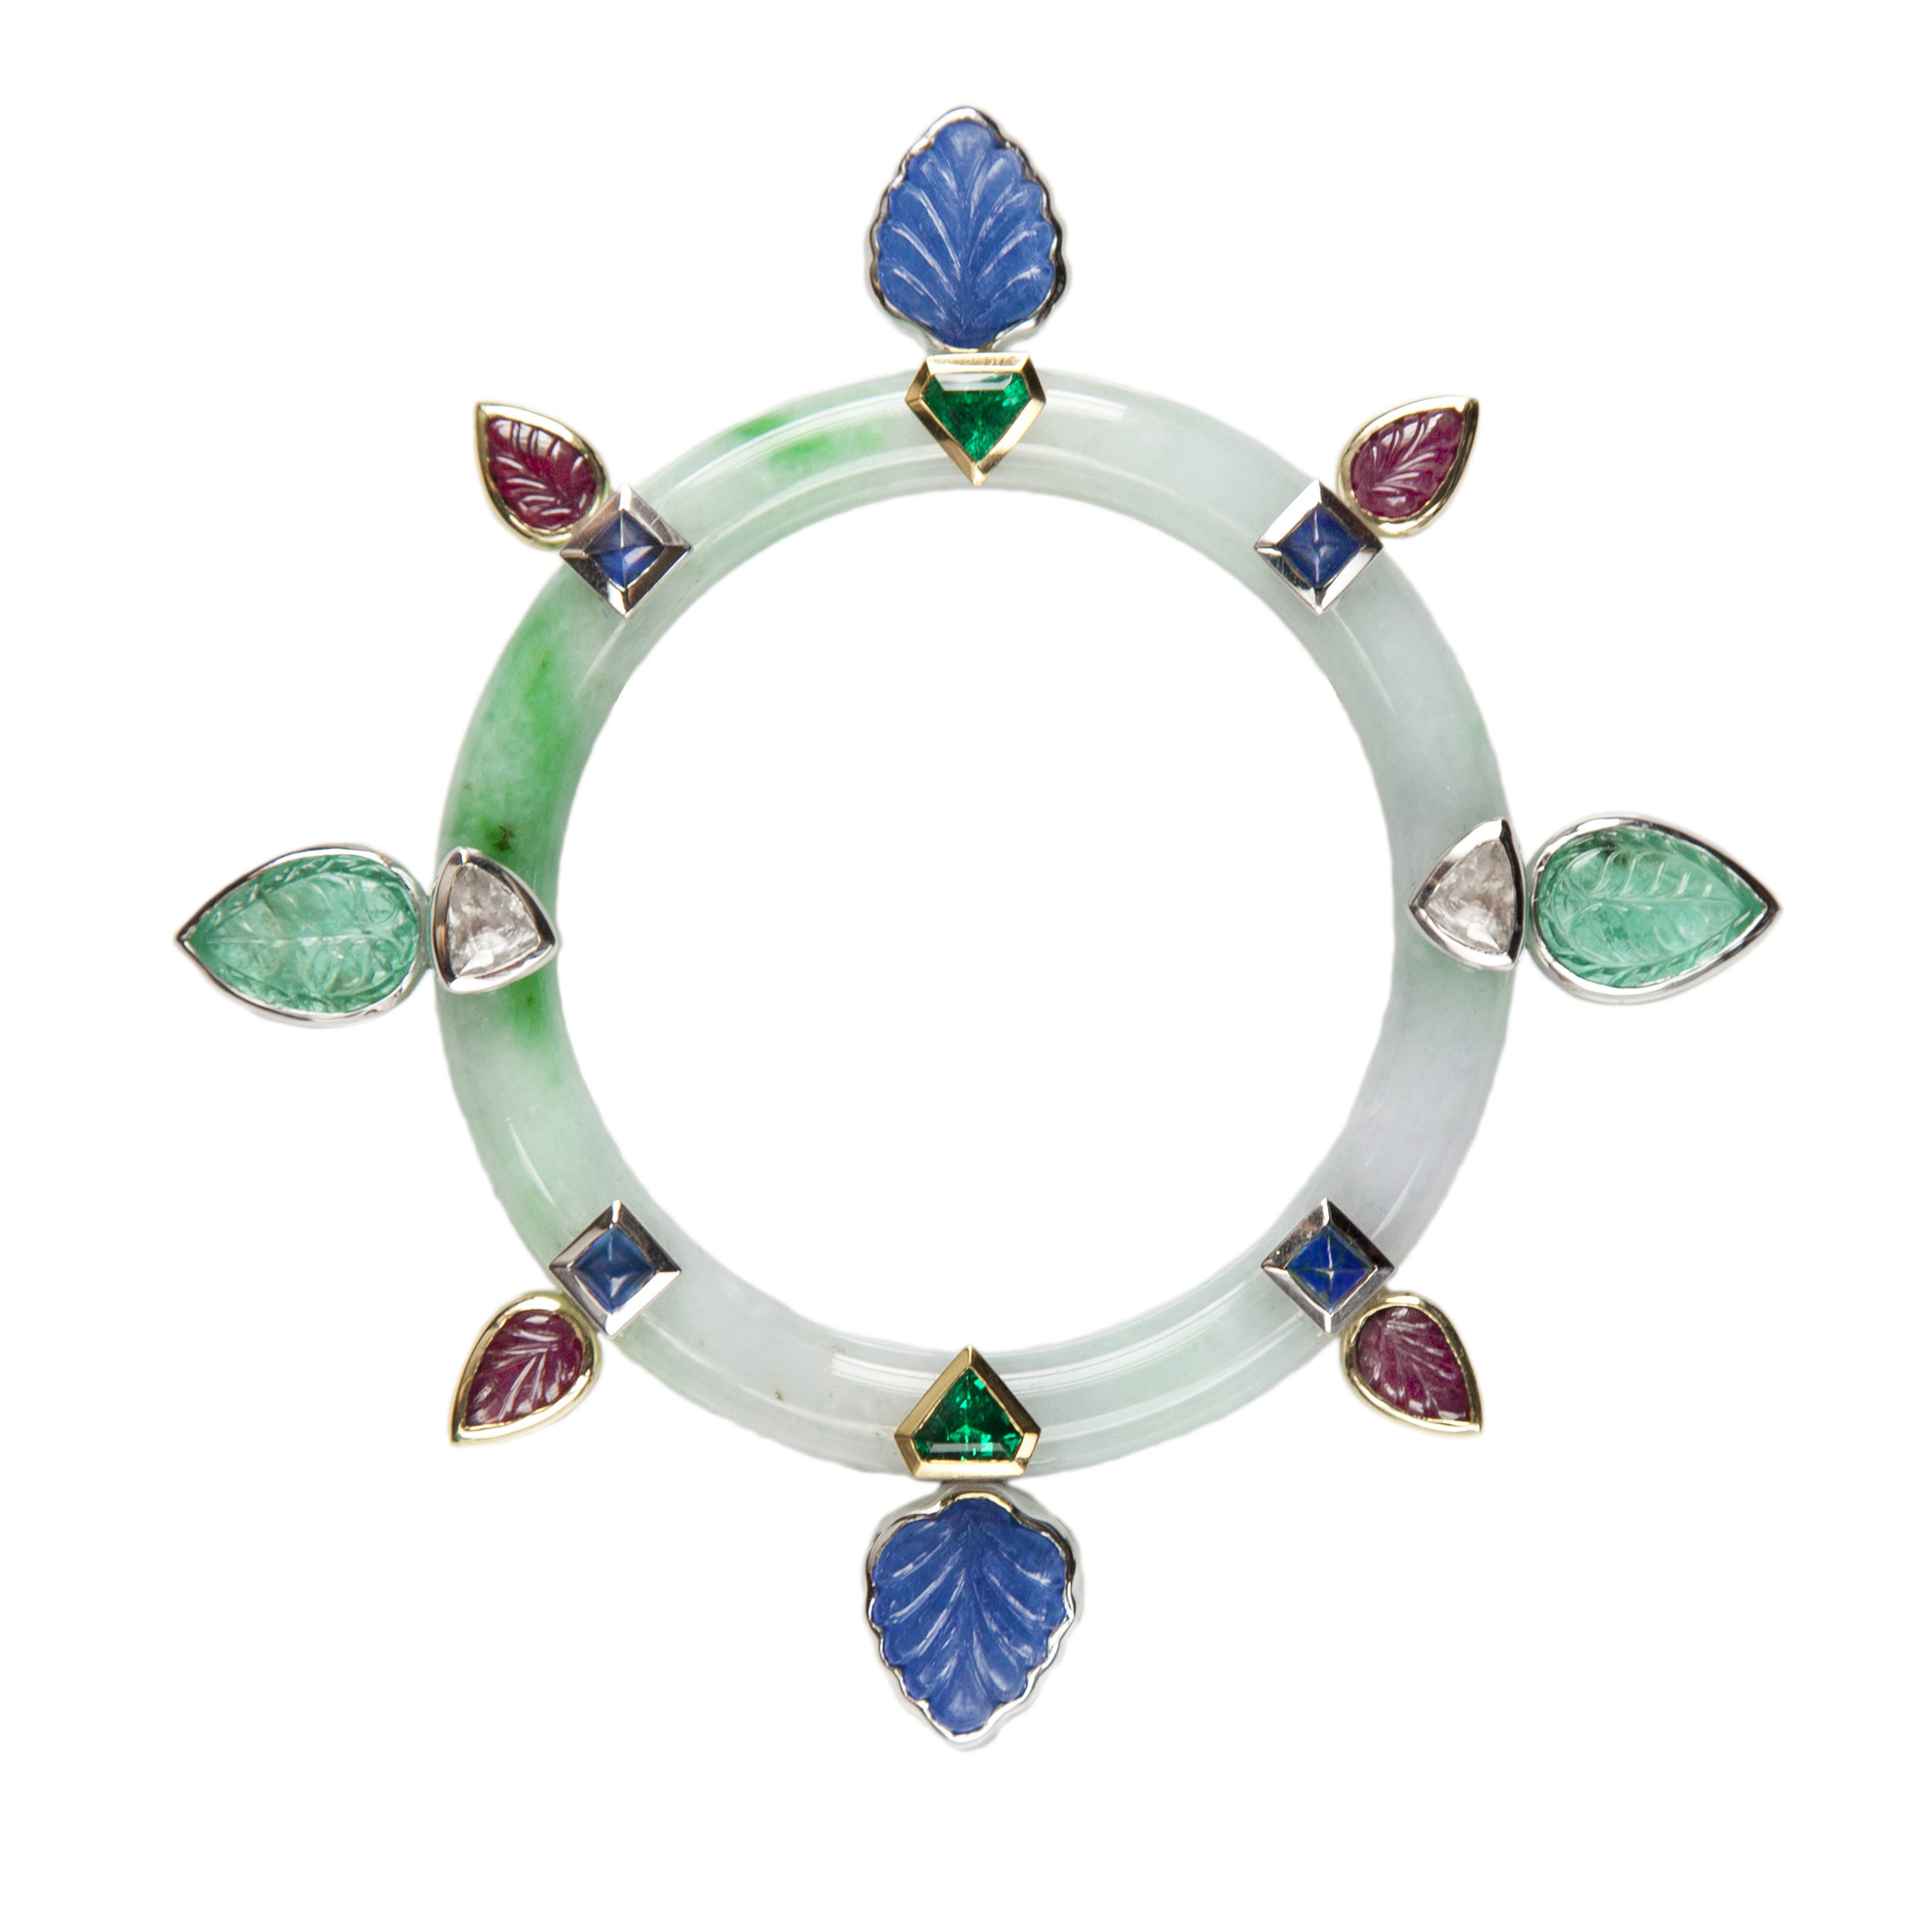 Burmese Jadeite pin with fancy carved, cabochon and faceted Emeralds (6.37 cts.), Rubies (4 cts.), Saphires (13.10 cts.) and Diamond Macles (2.05 cts.) set in 18K white and yellow Gold